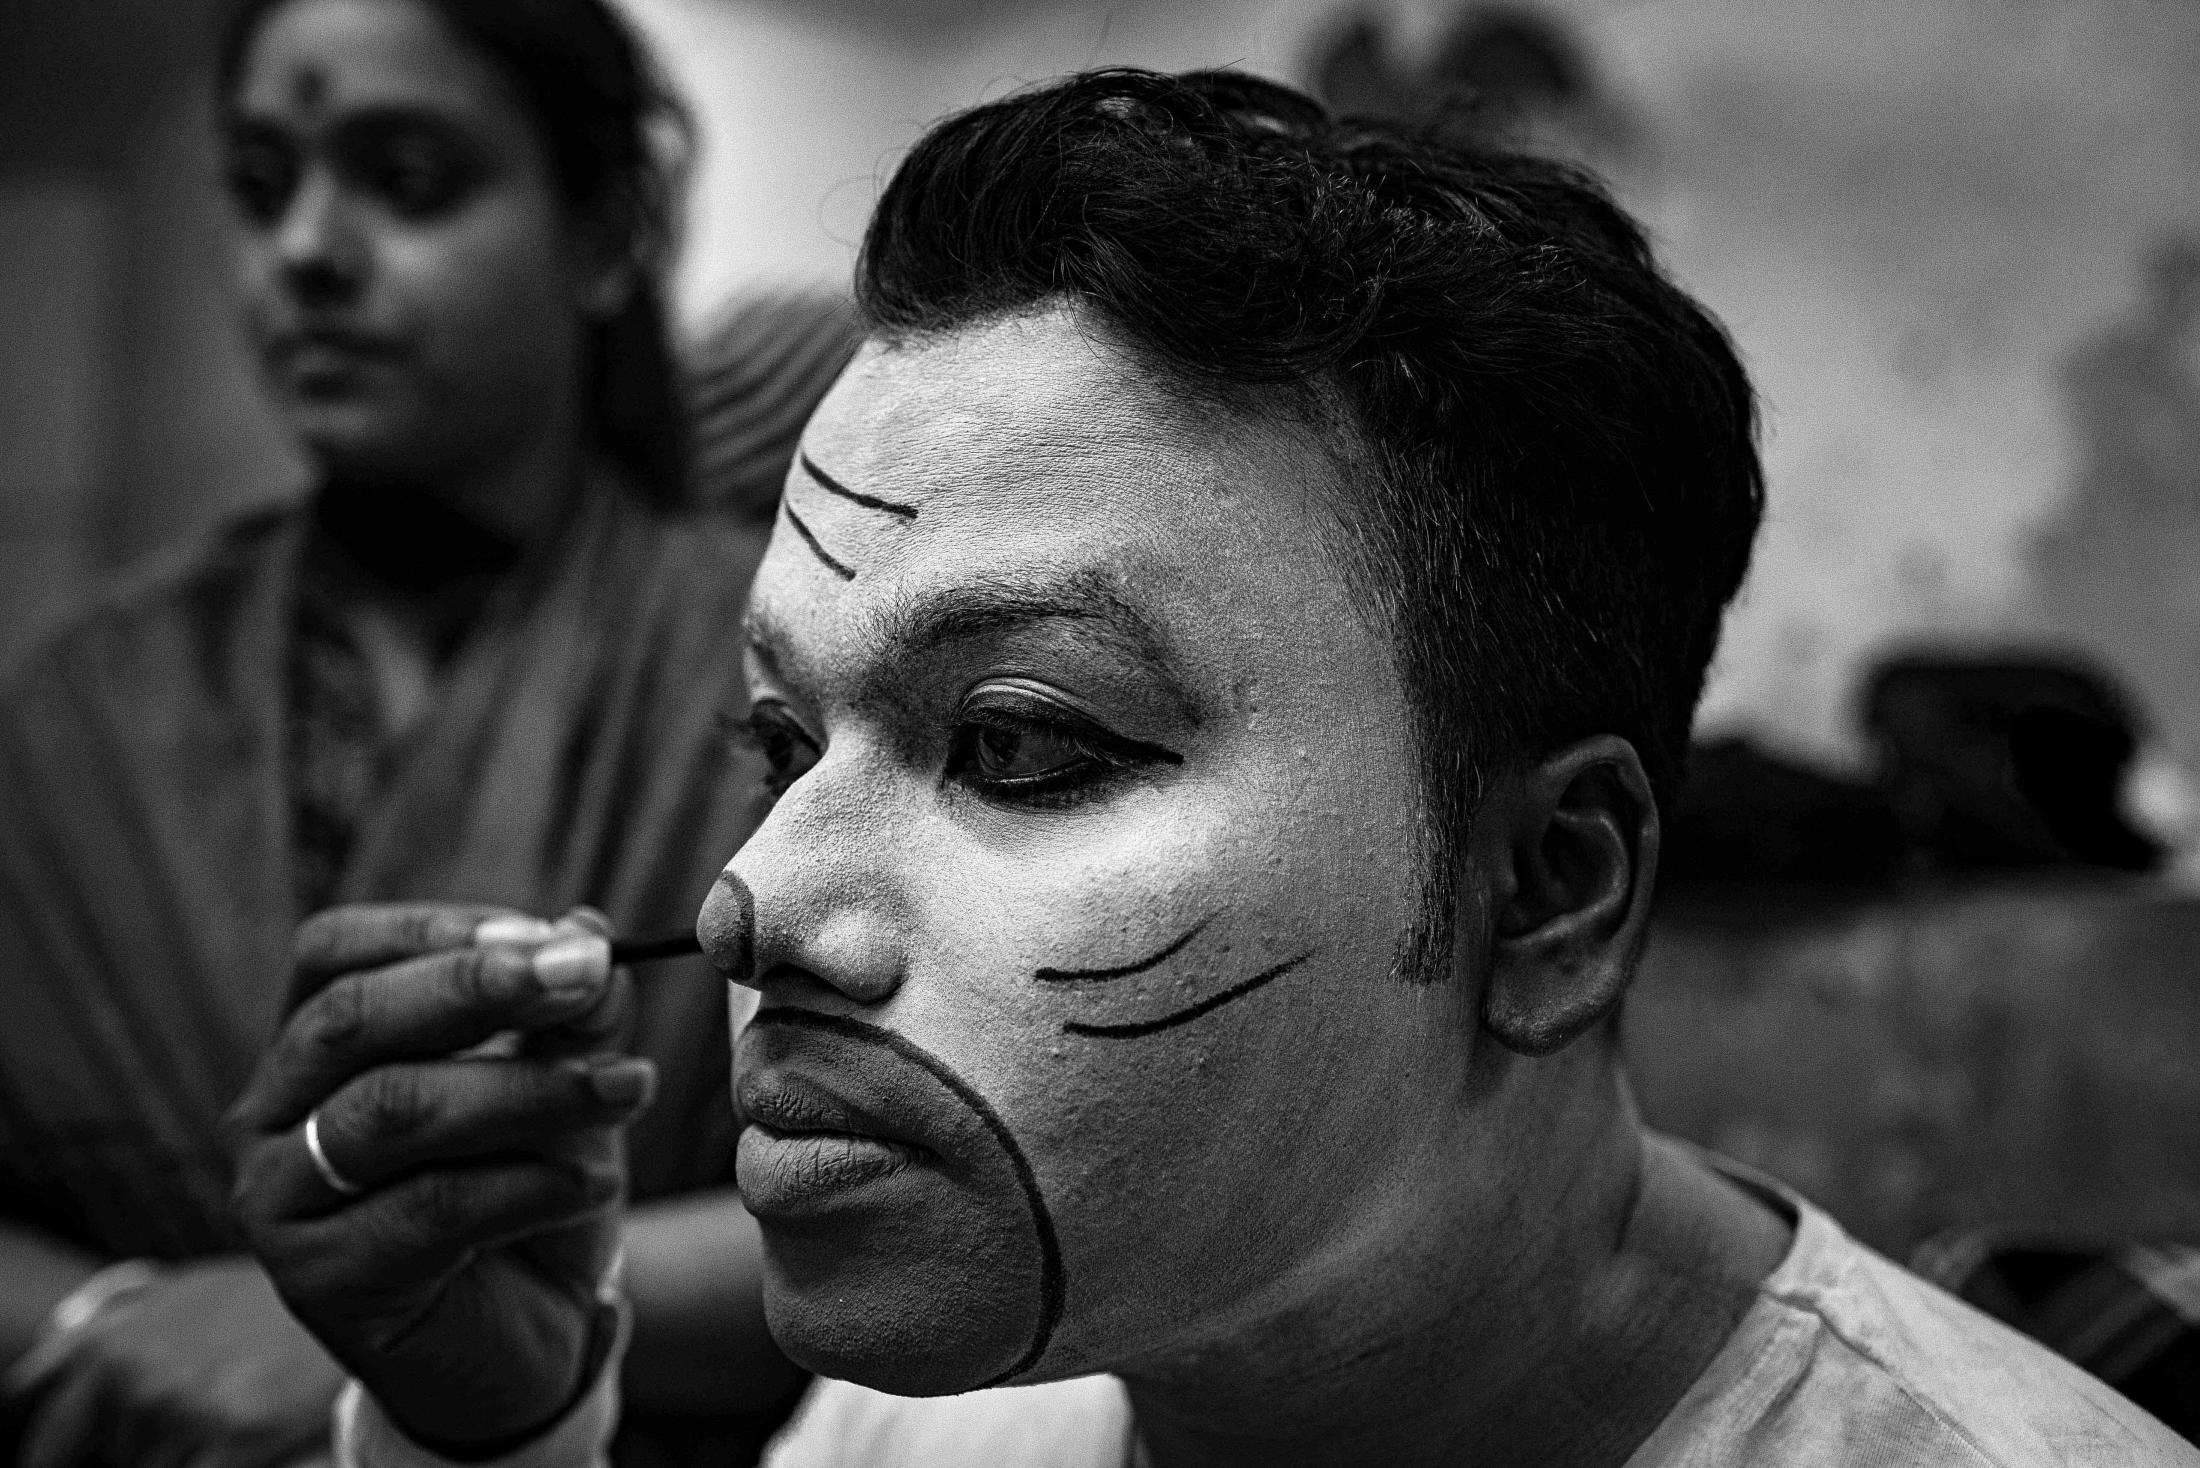 A performer taking makeup as per his role in the drama.